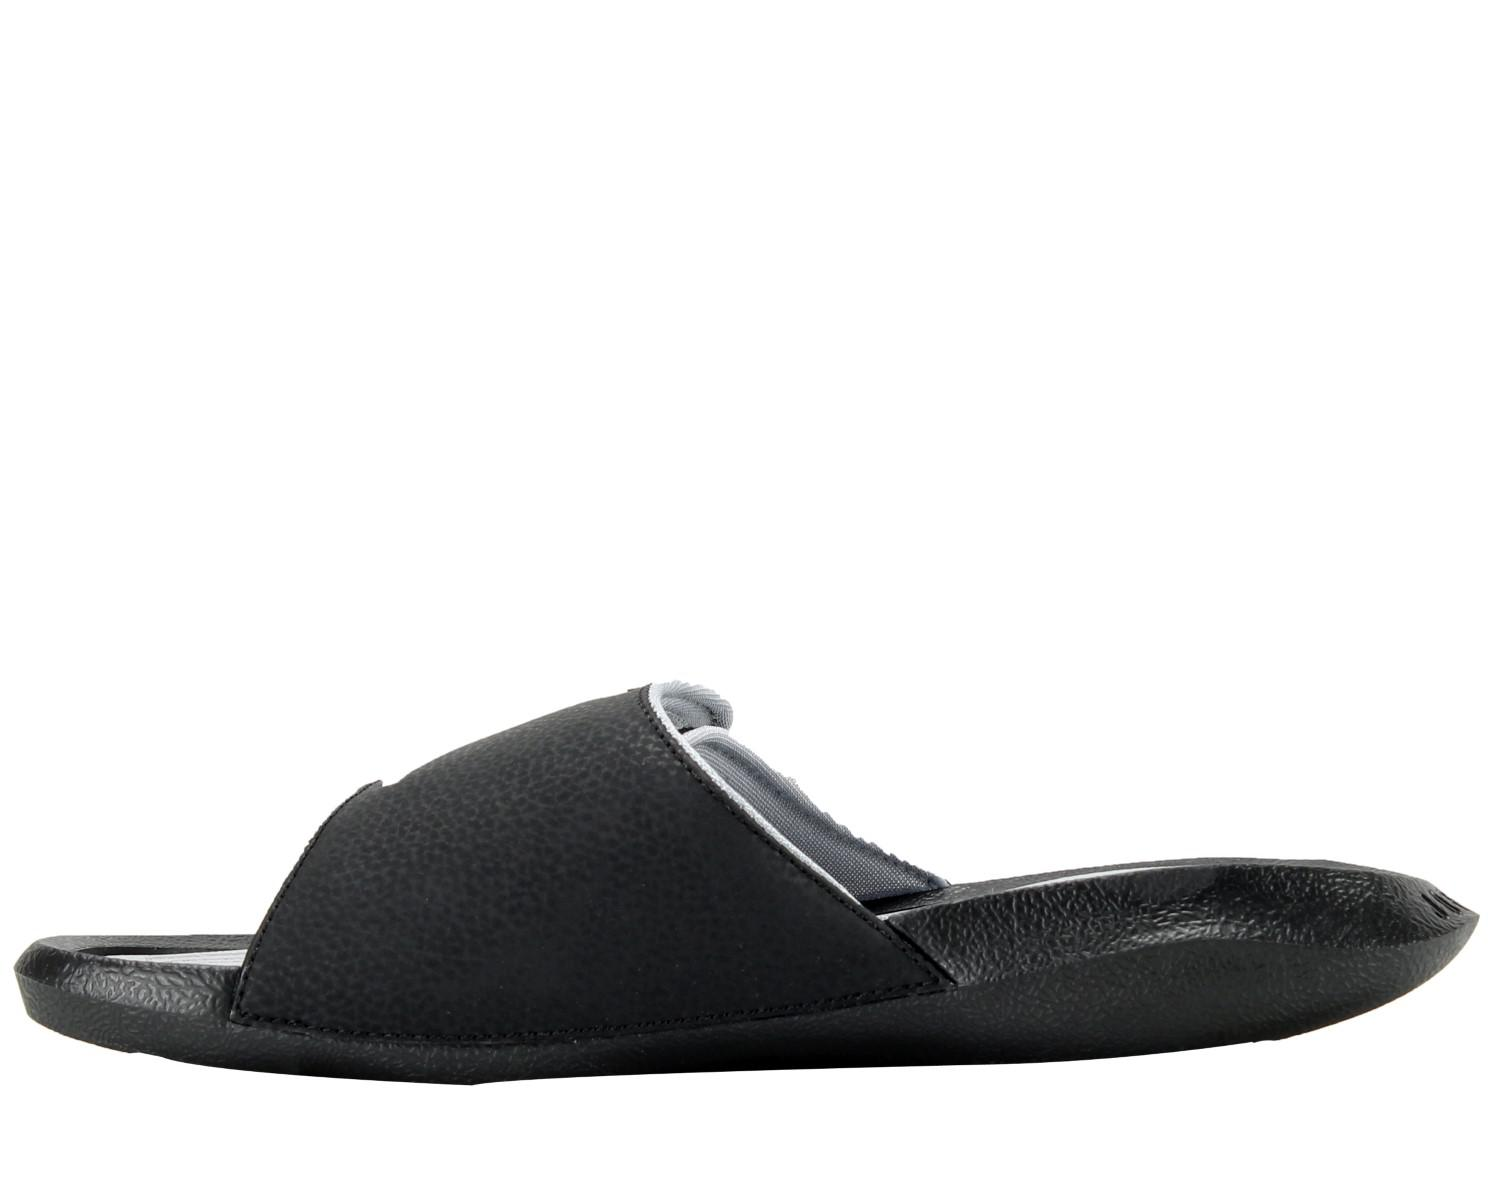 28955e93e Lyst - Nike Men Jordan Hydro 6 Sandals in Black for Men